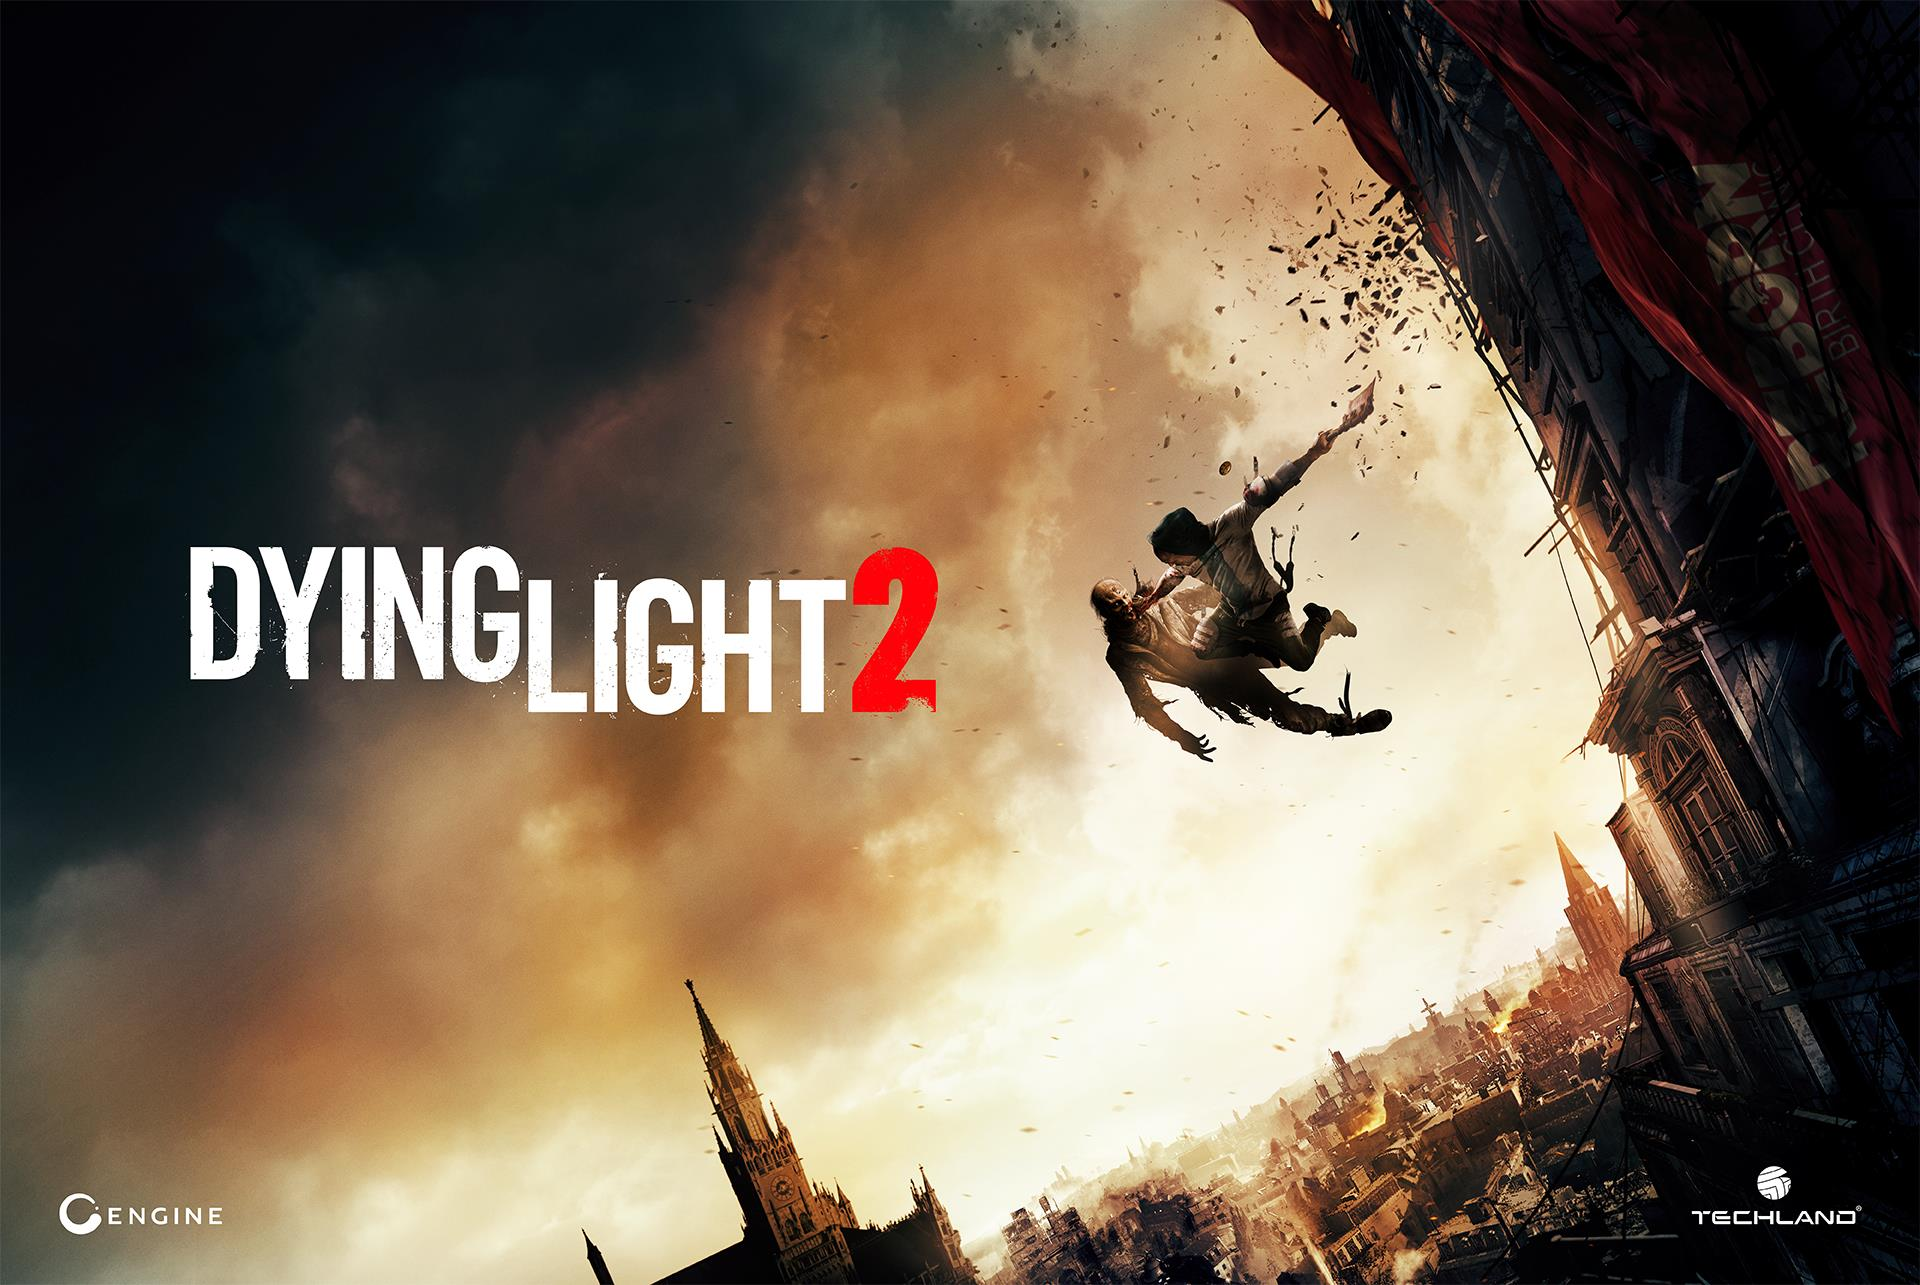 On The Subject Of Perfomance PC Version Dying Light 2 Runs At 60 Fps With Smektaa Saying That Console Versions Are Also Aiming For